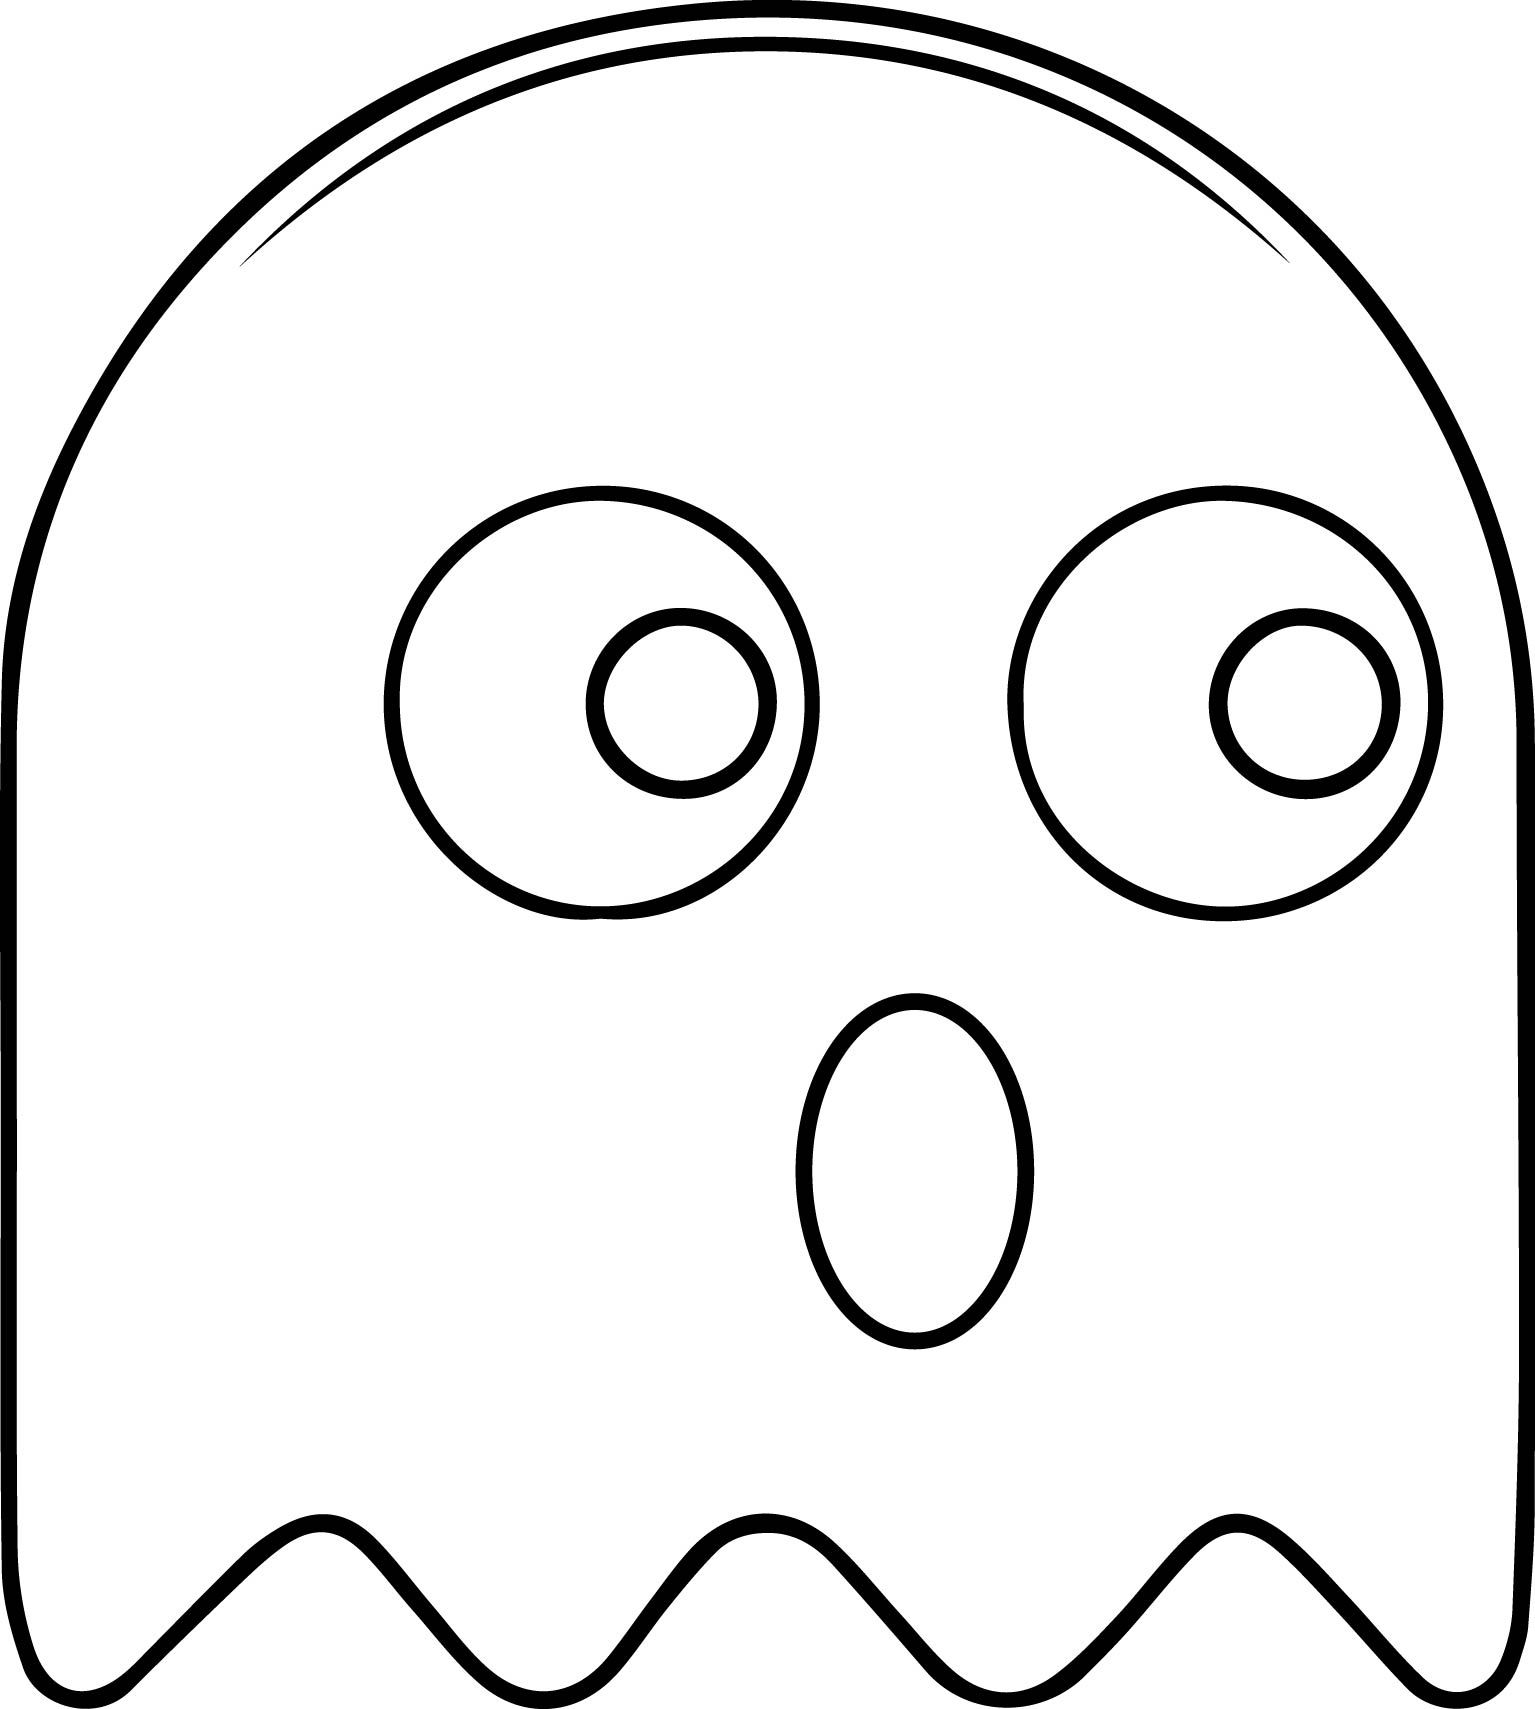 Pacman Coloring Page Wecoloringpage 140 Coloring Pages To Print